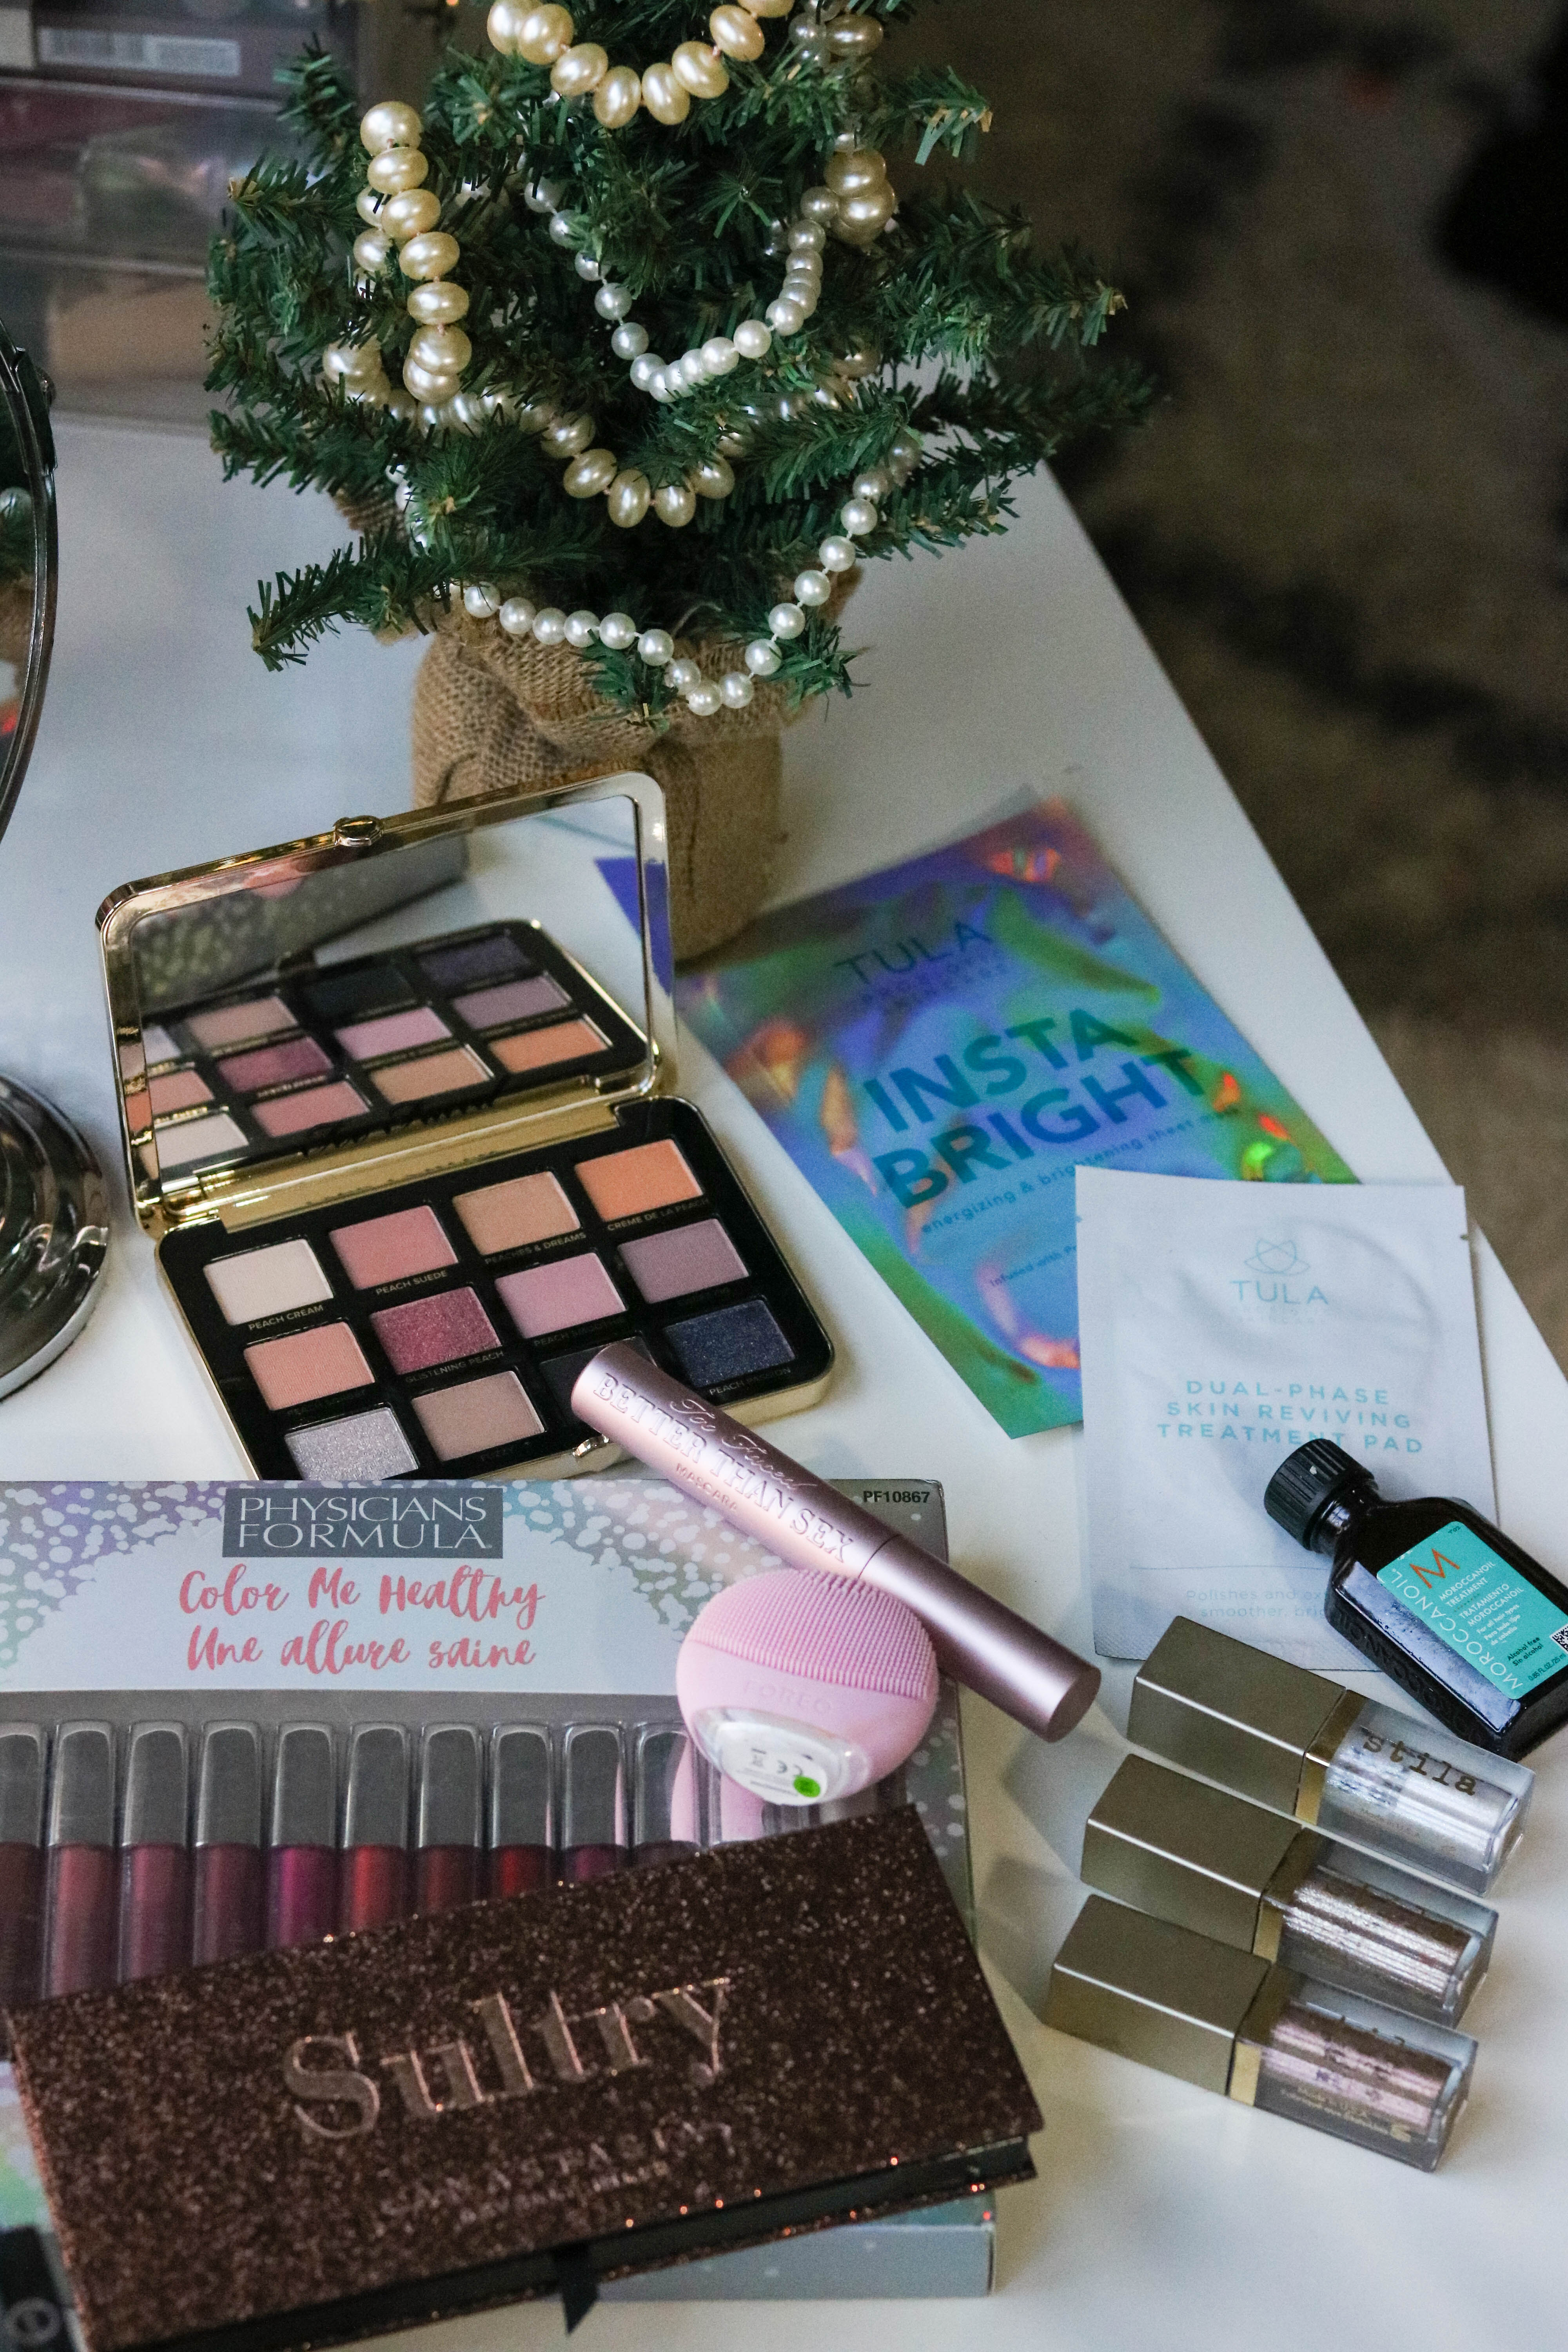 GIFT GUIDE - 25 Beauty Gifts UNDER $50, for the Beauty Queen, on Coming Up Roses